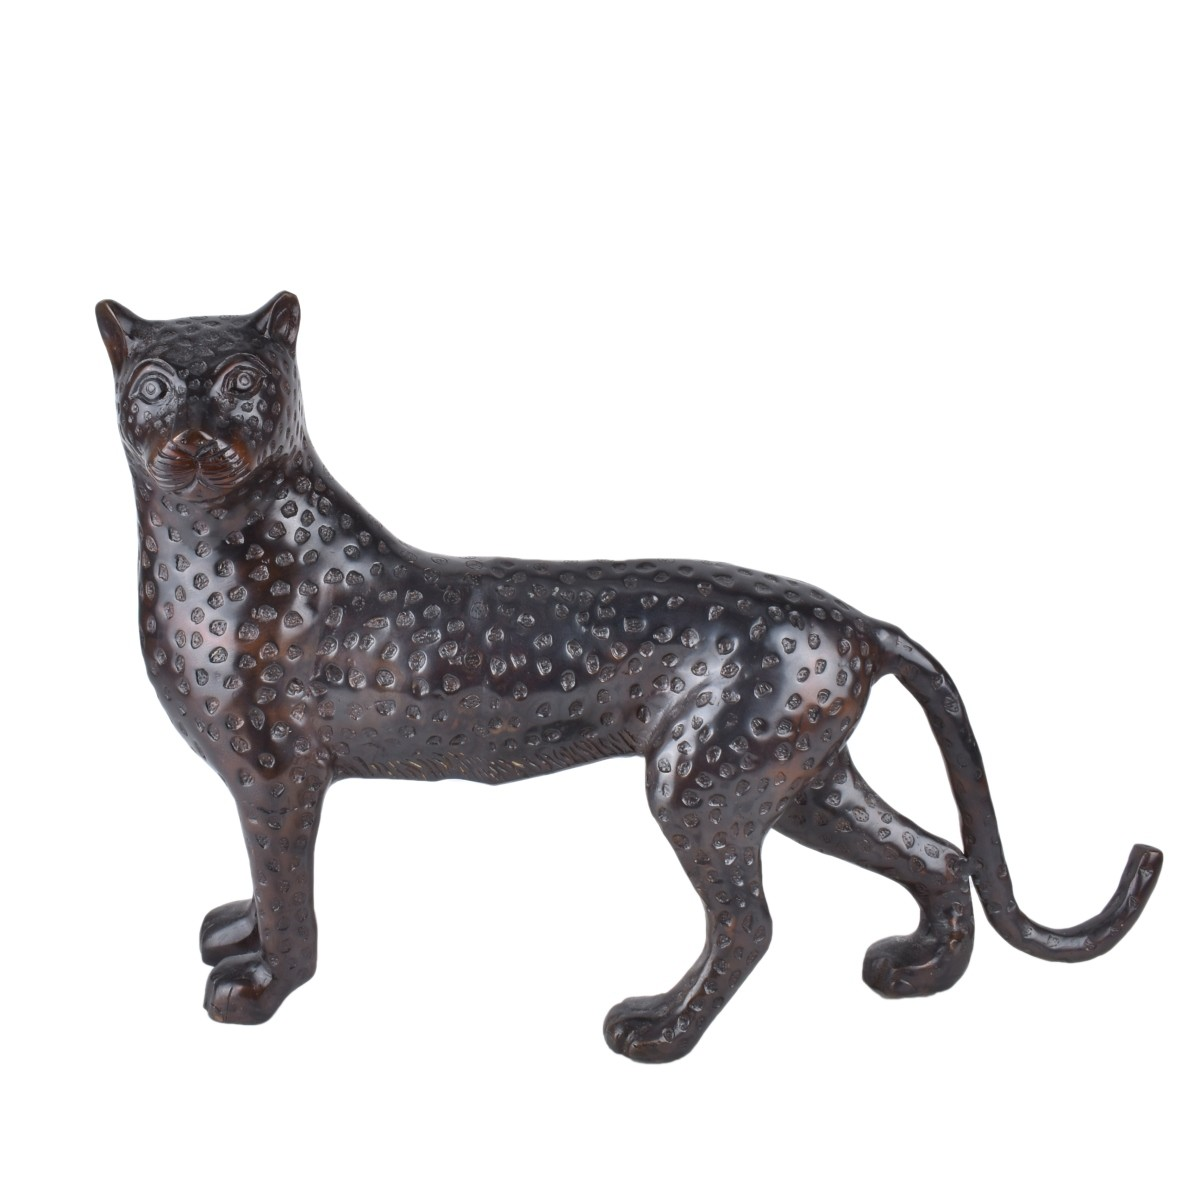 Modern Bronze Sculpture of a Cheetah